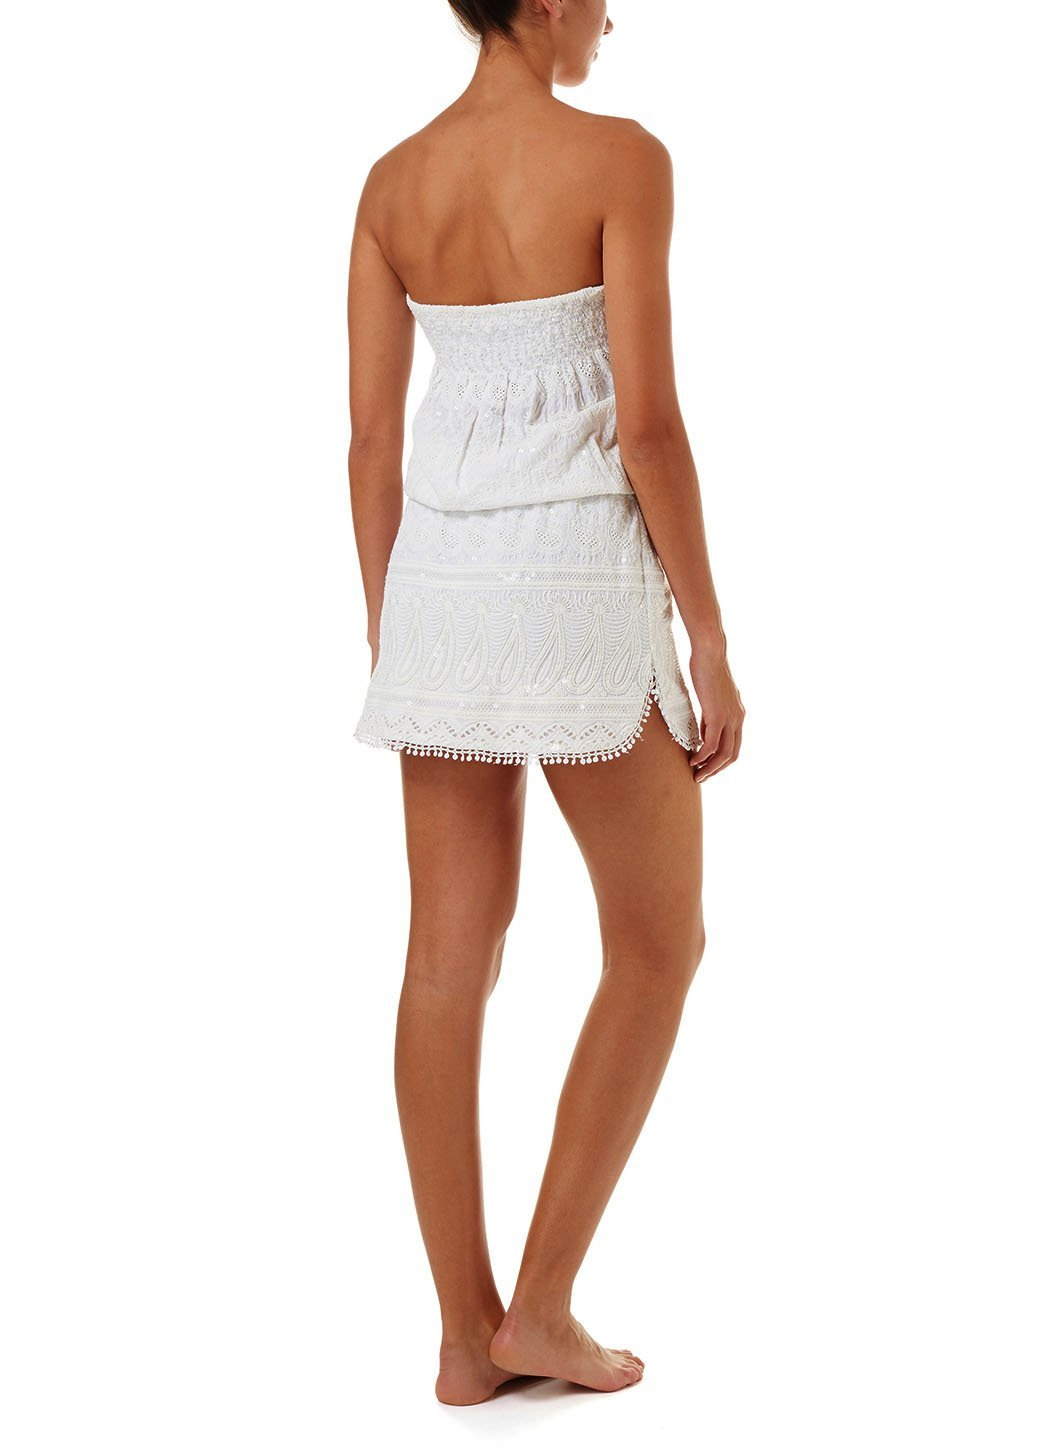 tia white textured short bandeau dress 2019 B